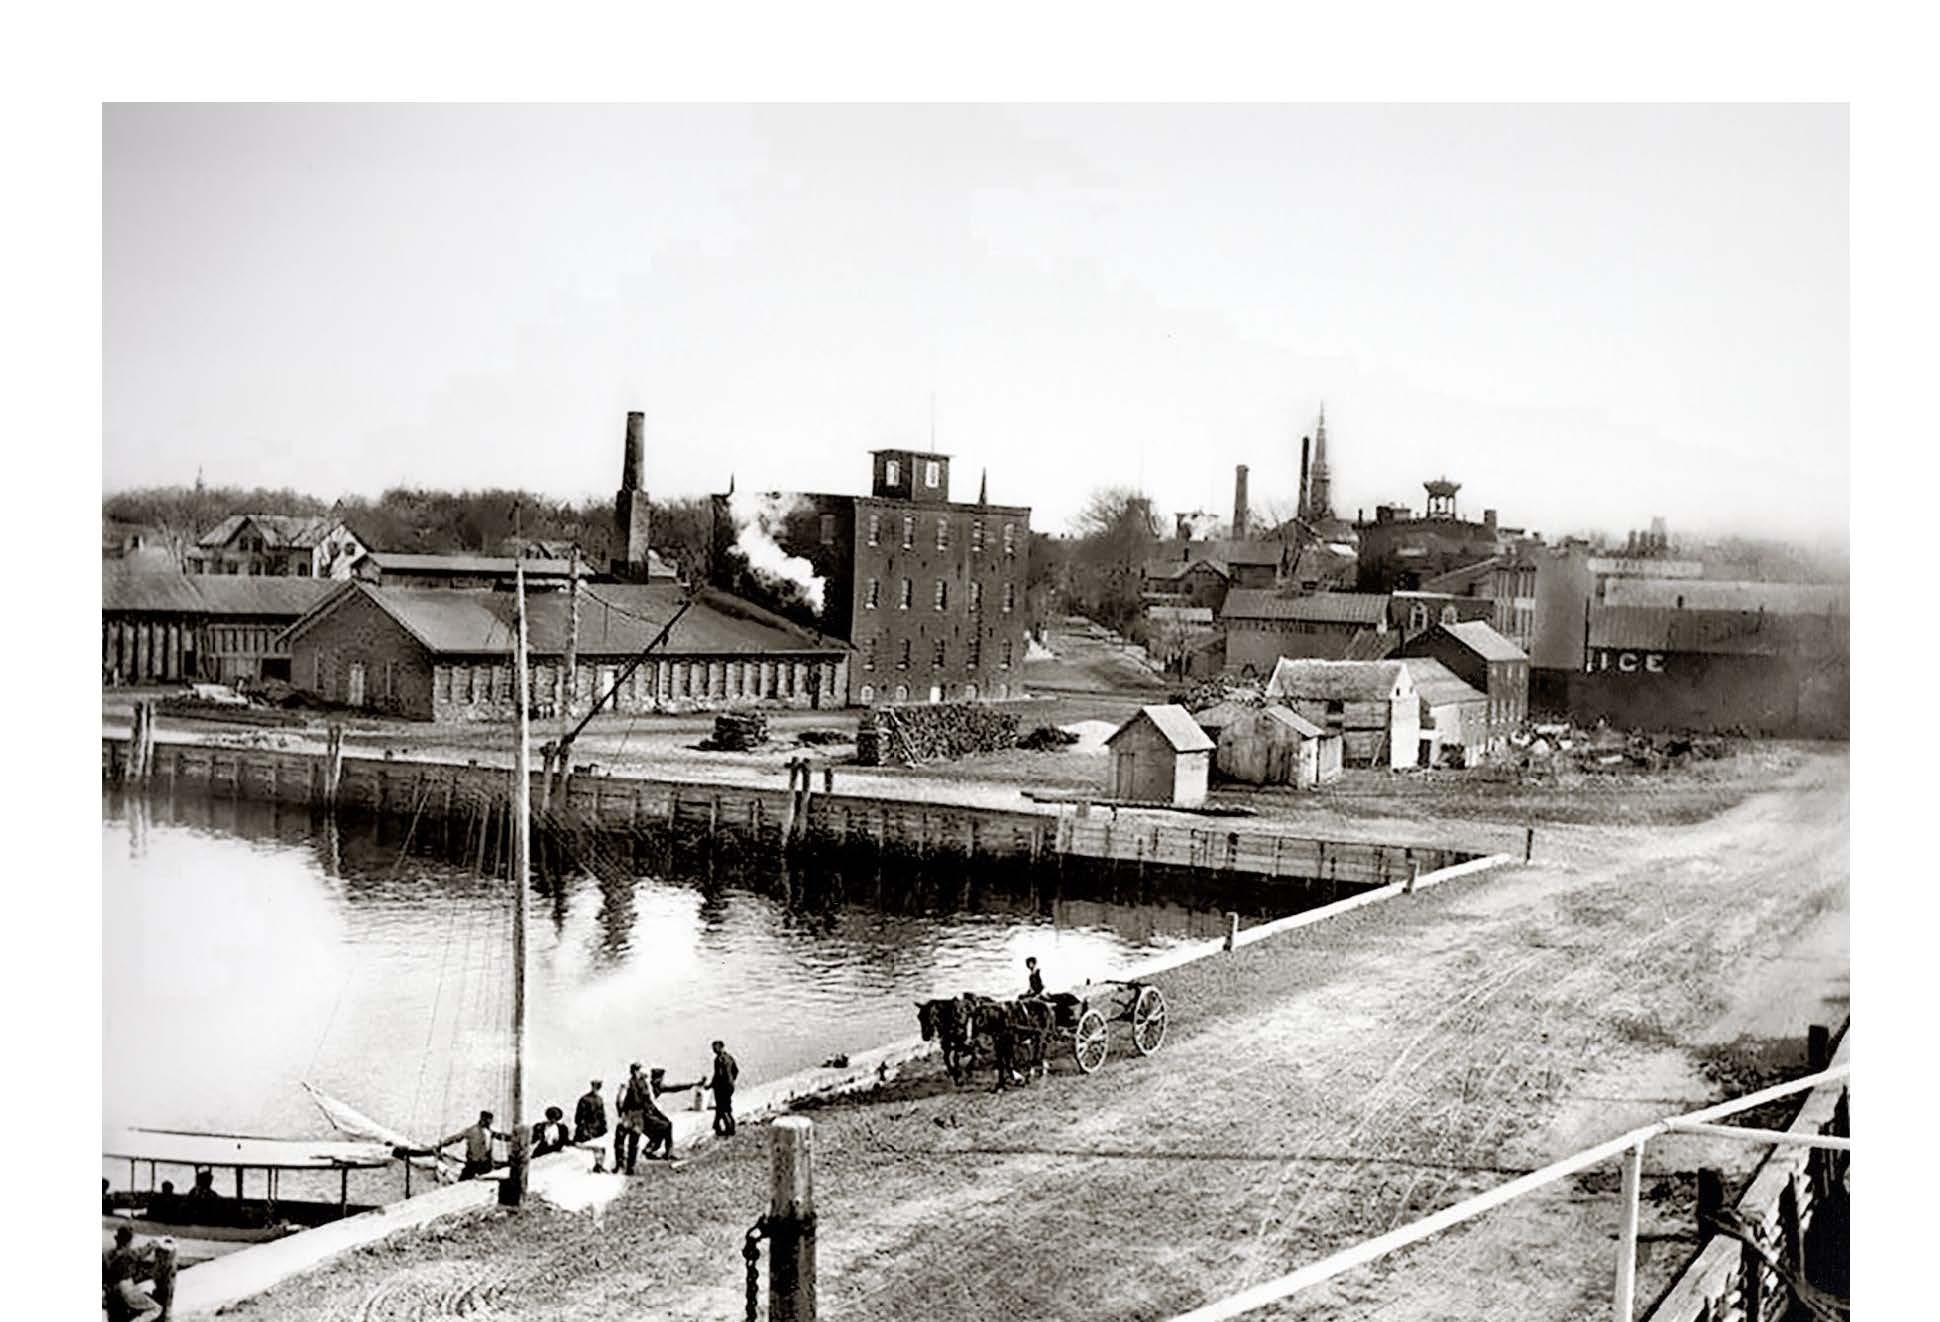 William Wallace Tooker's photo of the foot of Long Wharf in Sag Harbor, c. 1895.